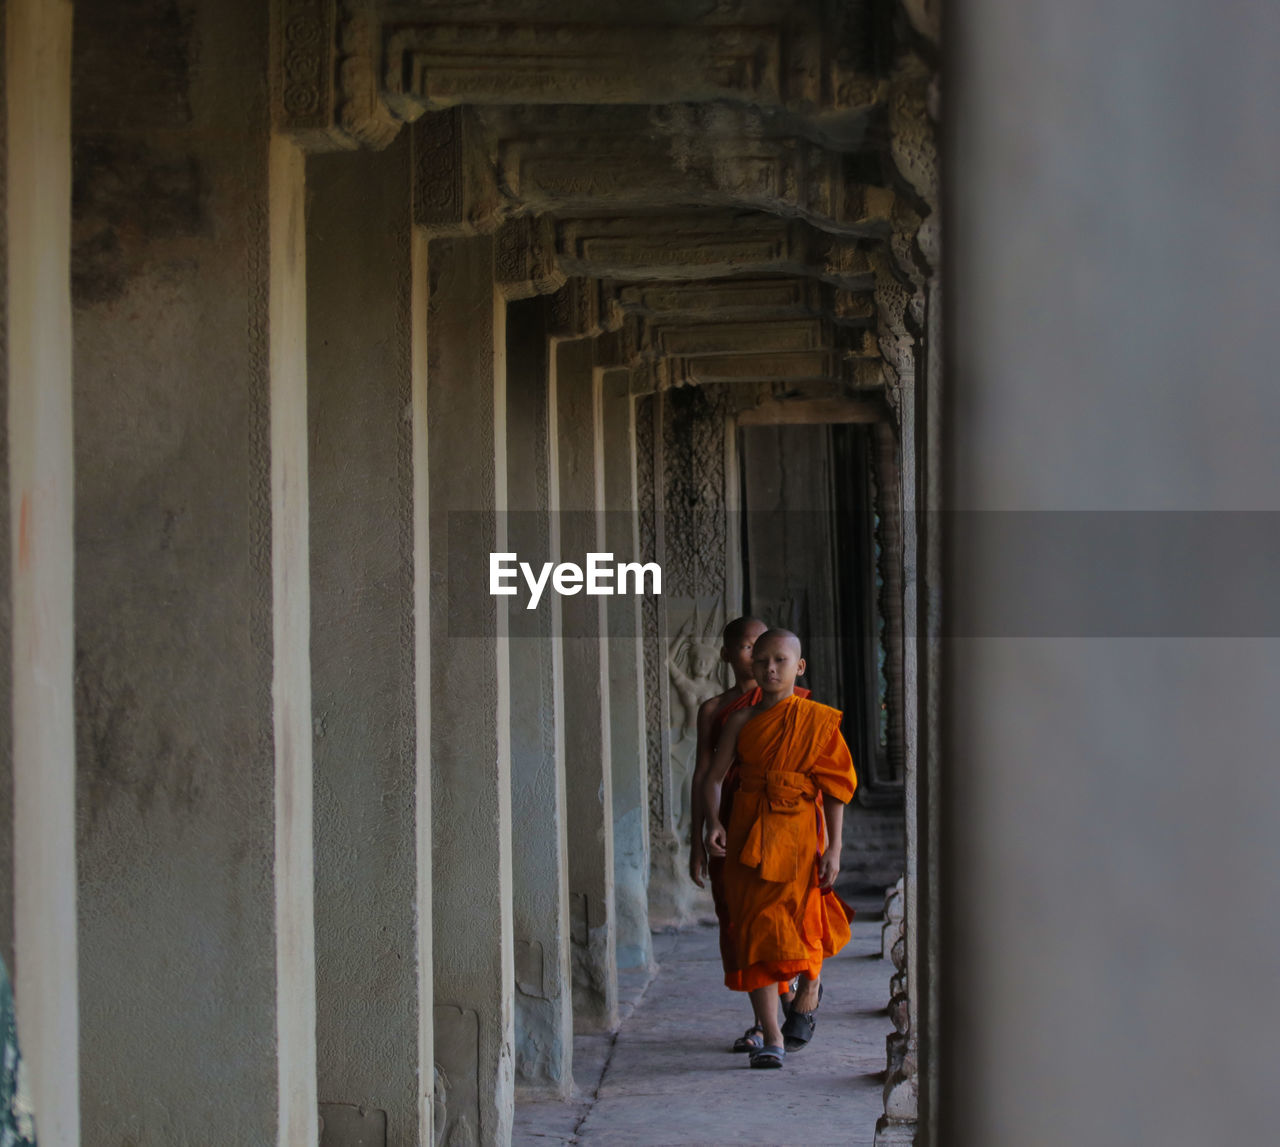 Monks Walking In Corridor Of Temple